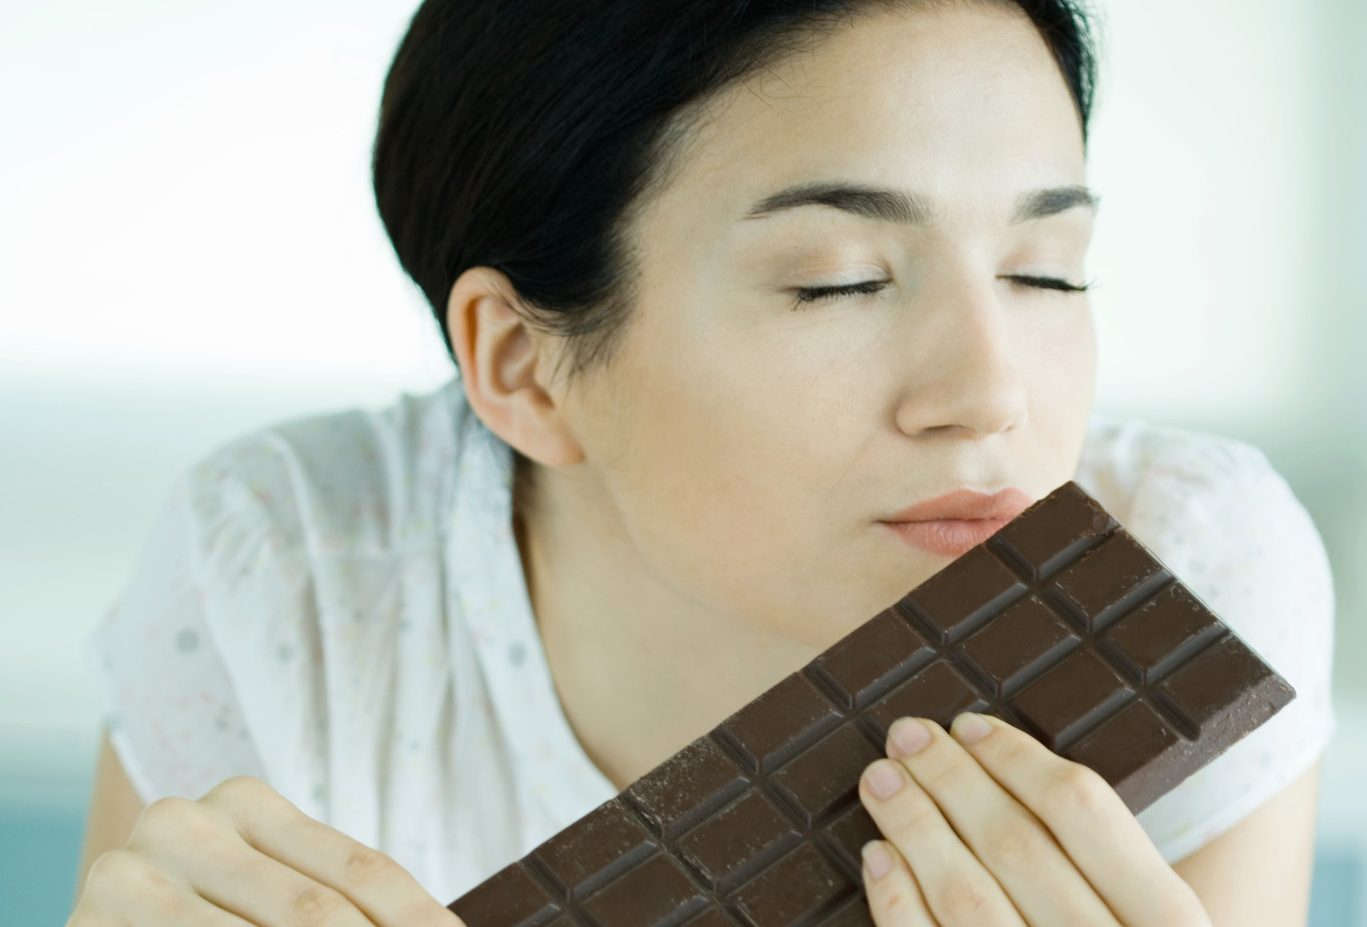 Apparently sniffing chocolate could help you quit smoking